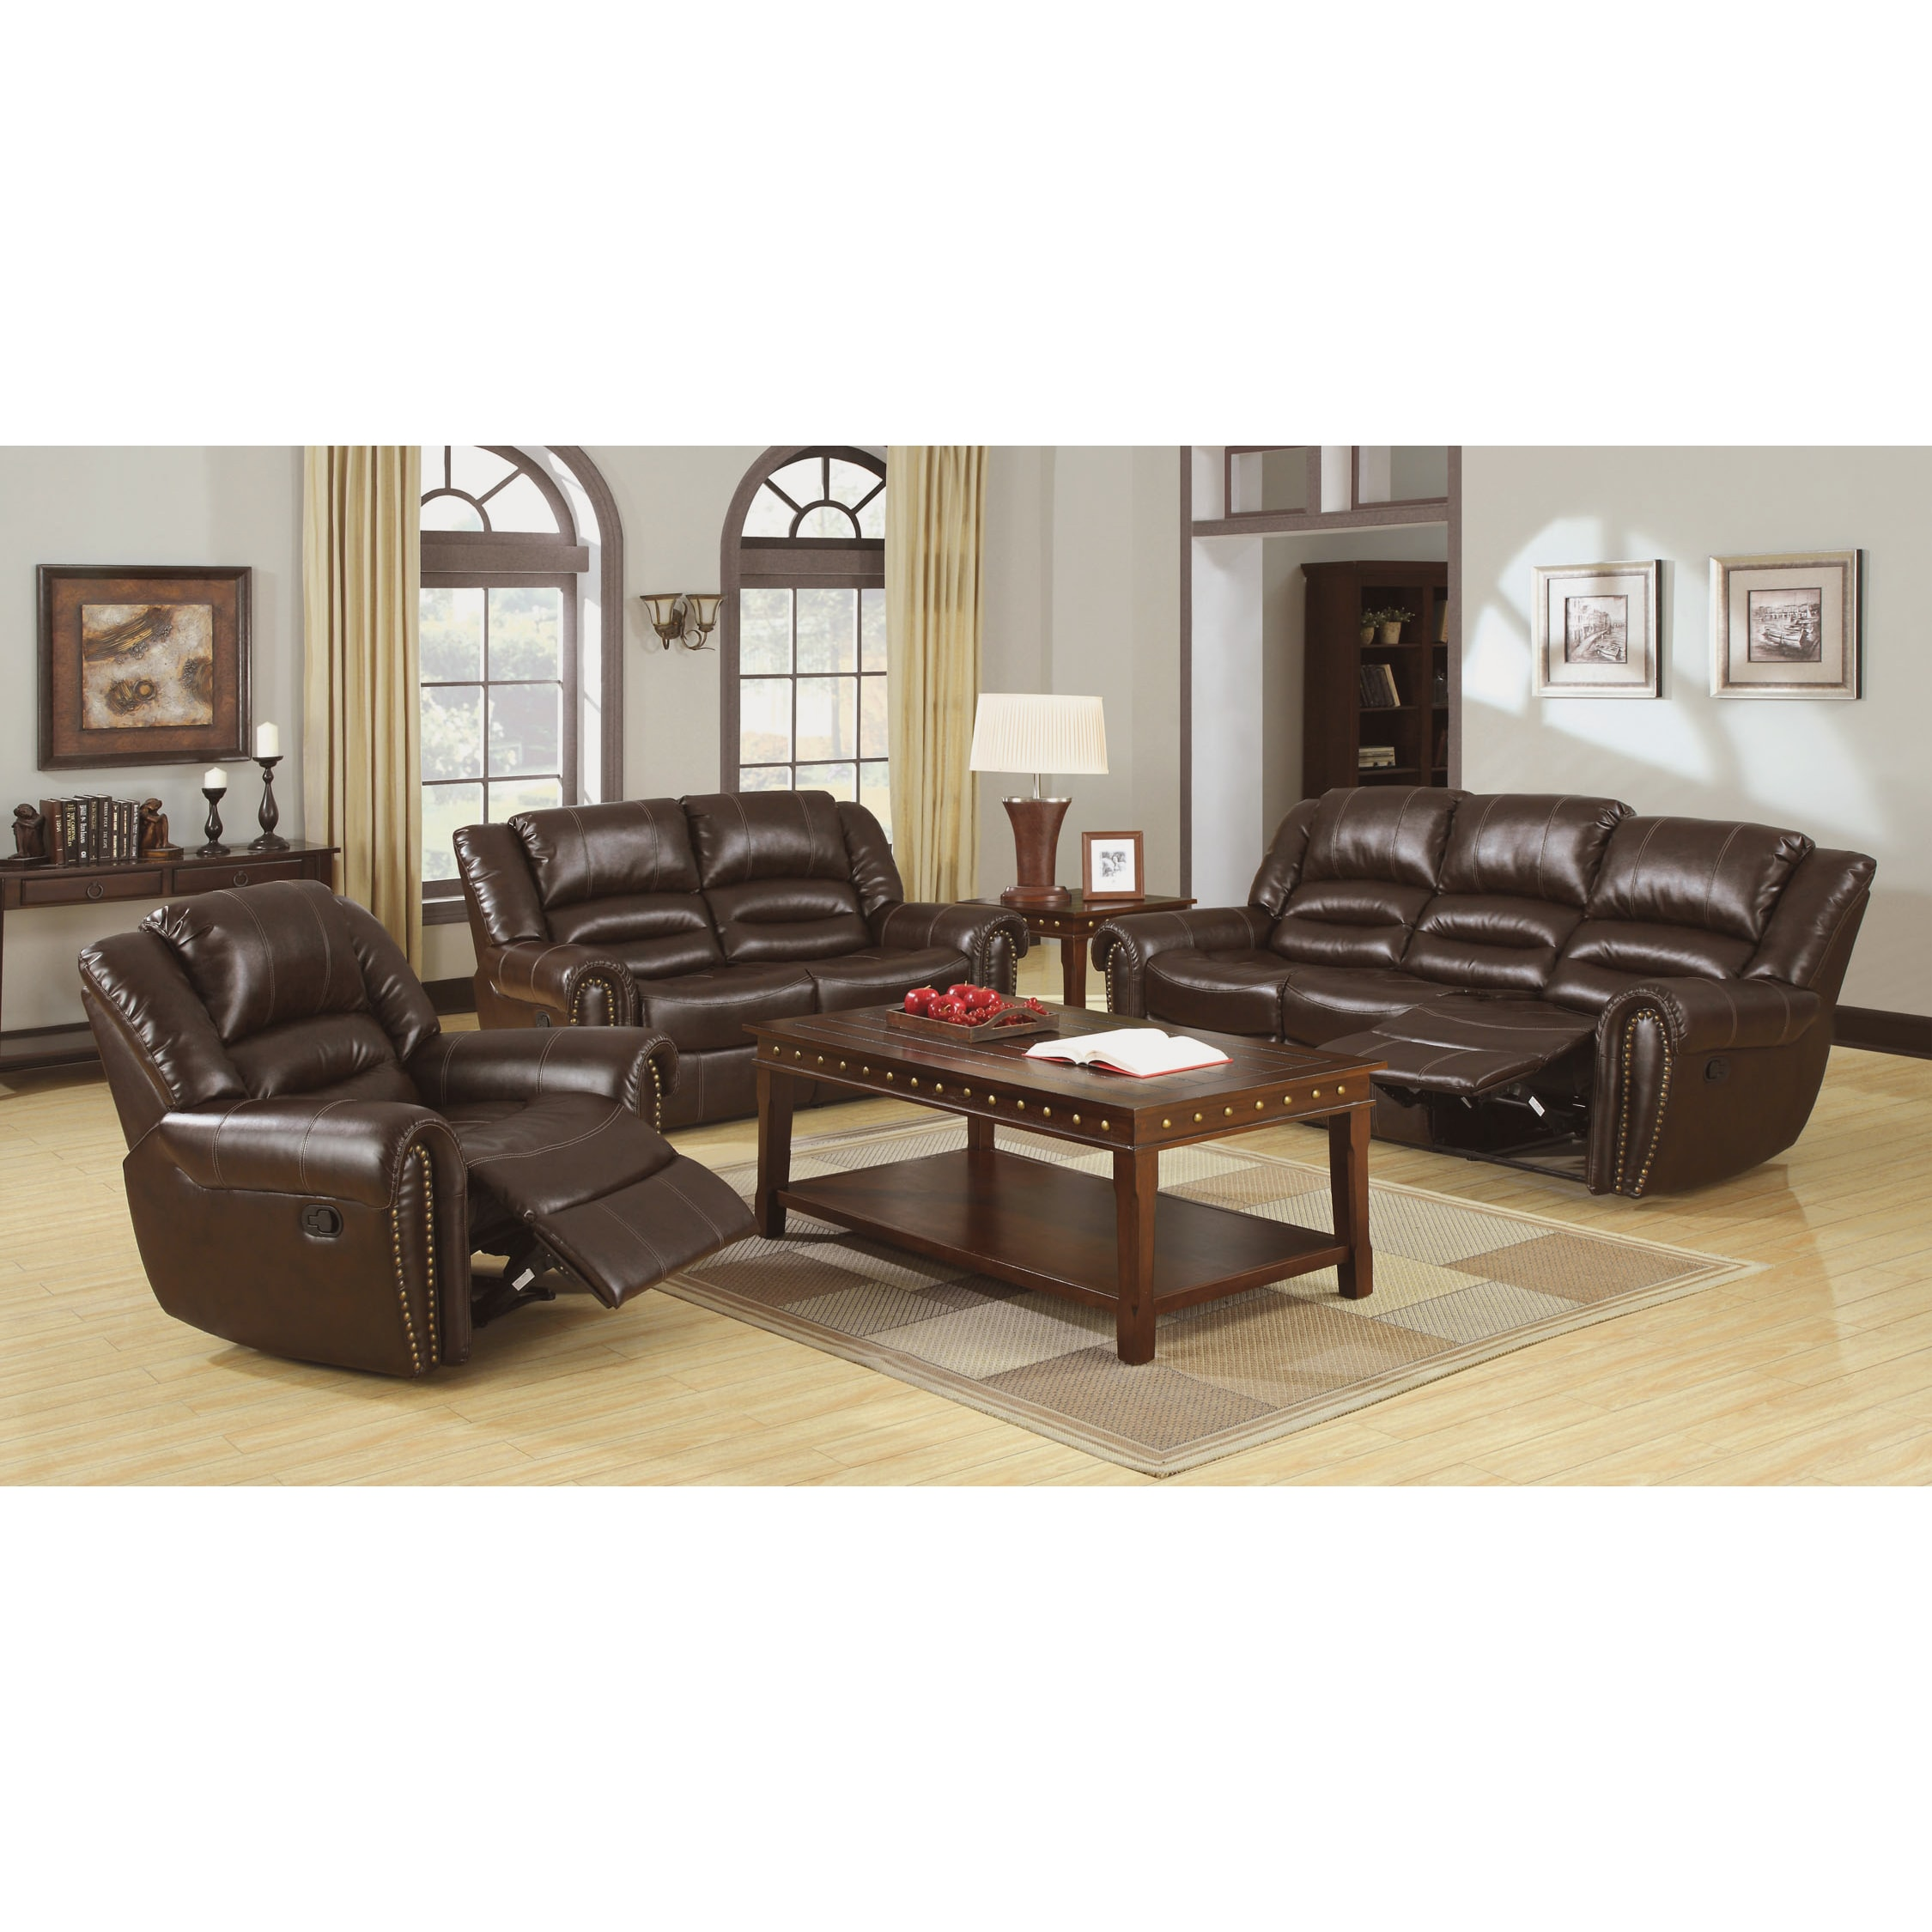 Furniture Of America Harv 2 Piece Brown Bonded Leather Sofa Set Free Shipping Today 9466856